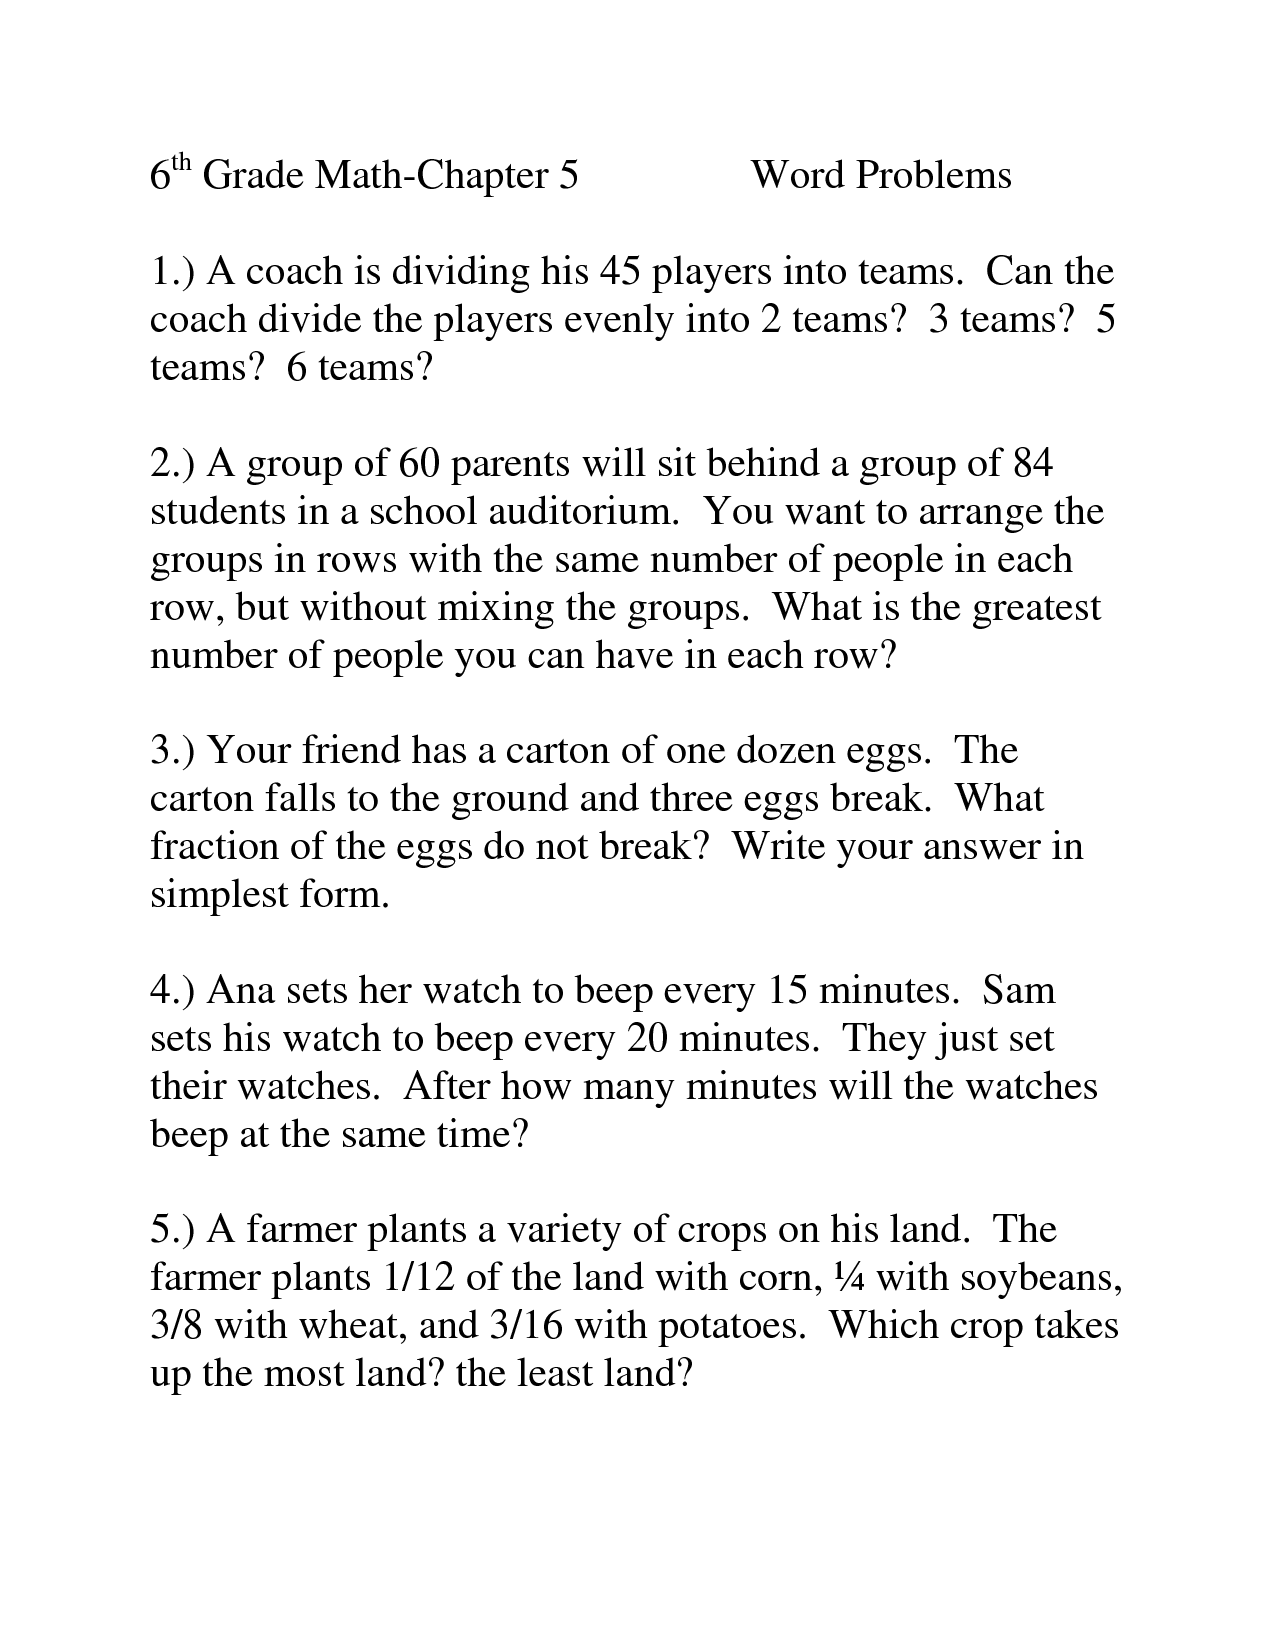 Year 7 Word Problems